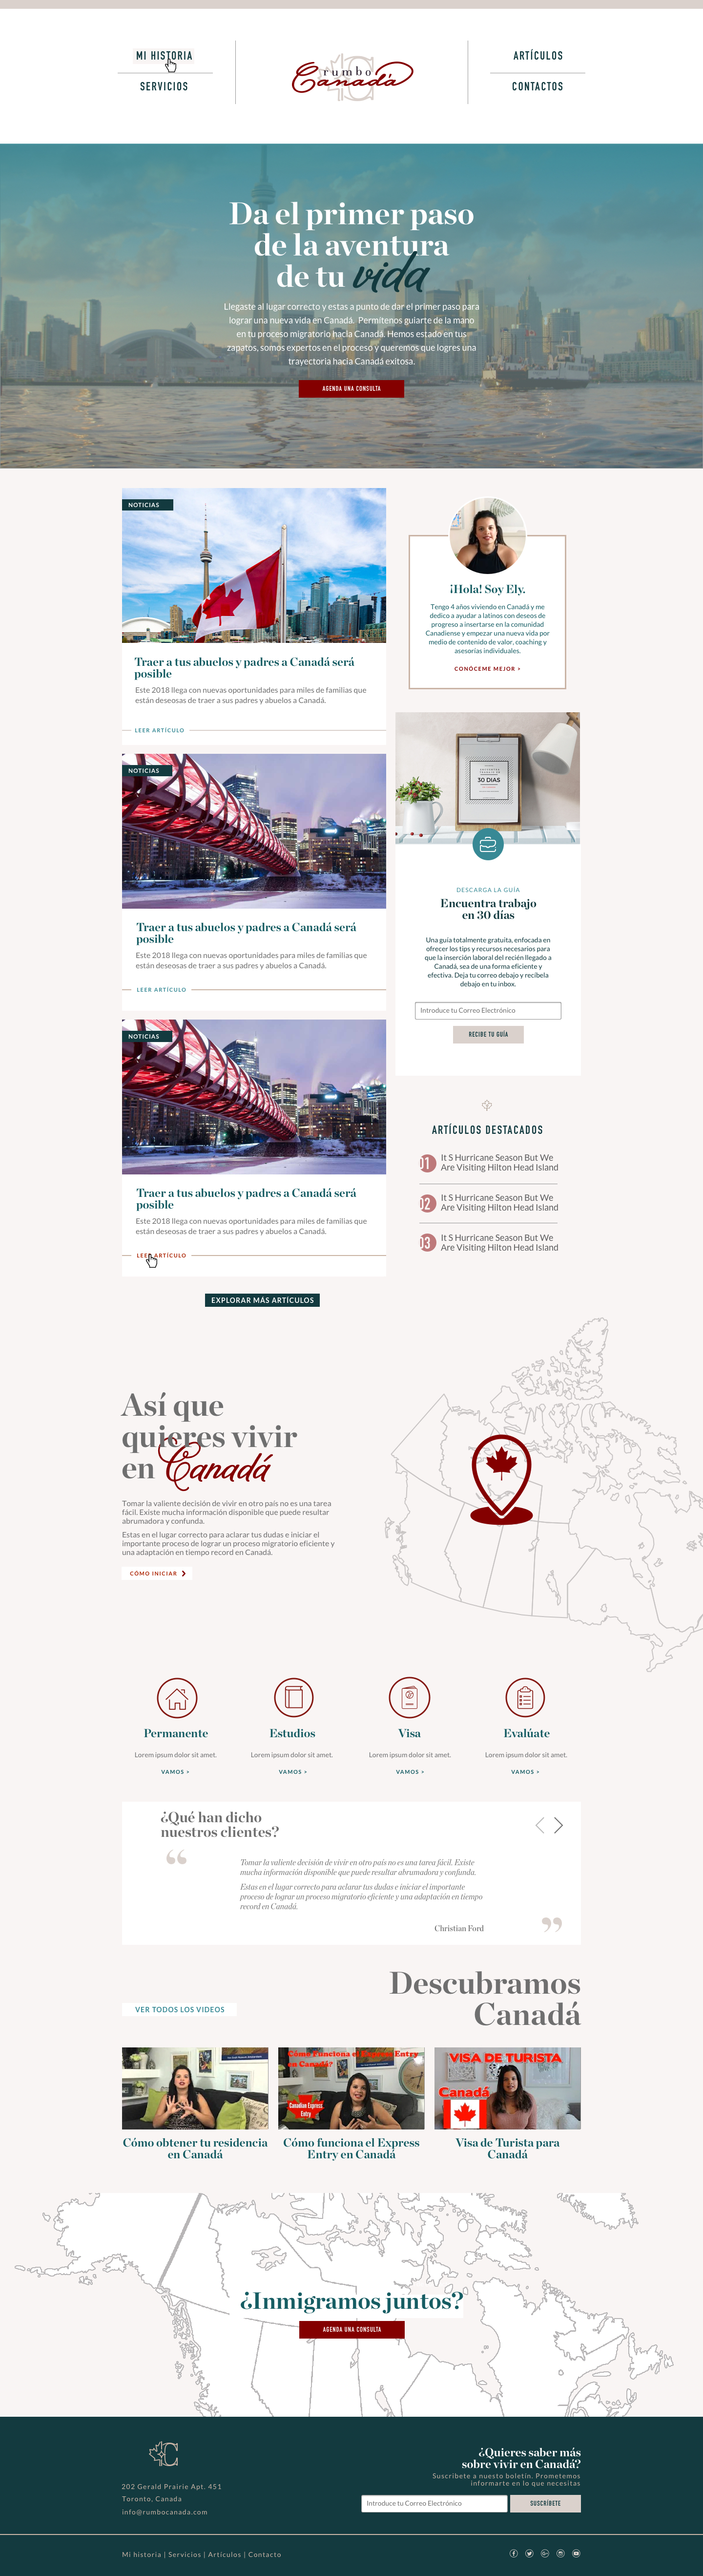 Canada Web Design Inmigration Consulting Services Branding